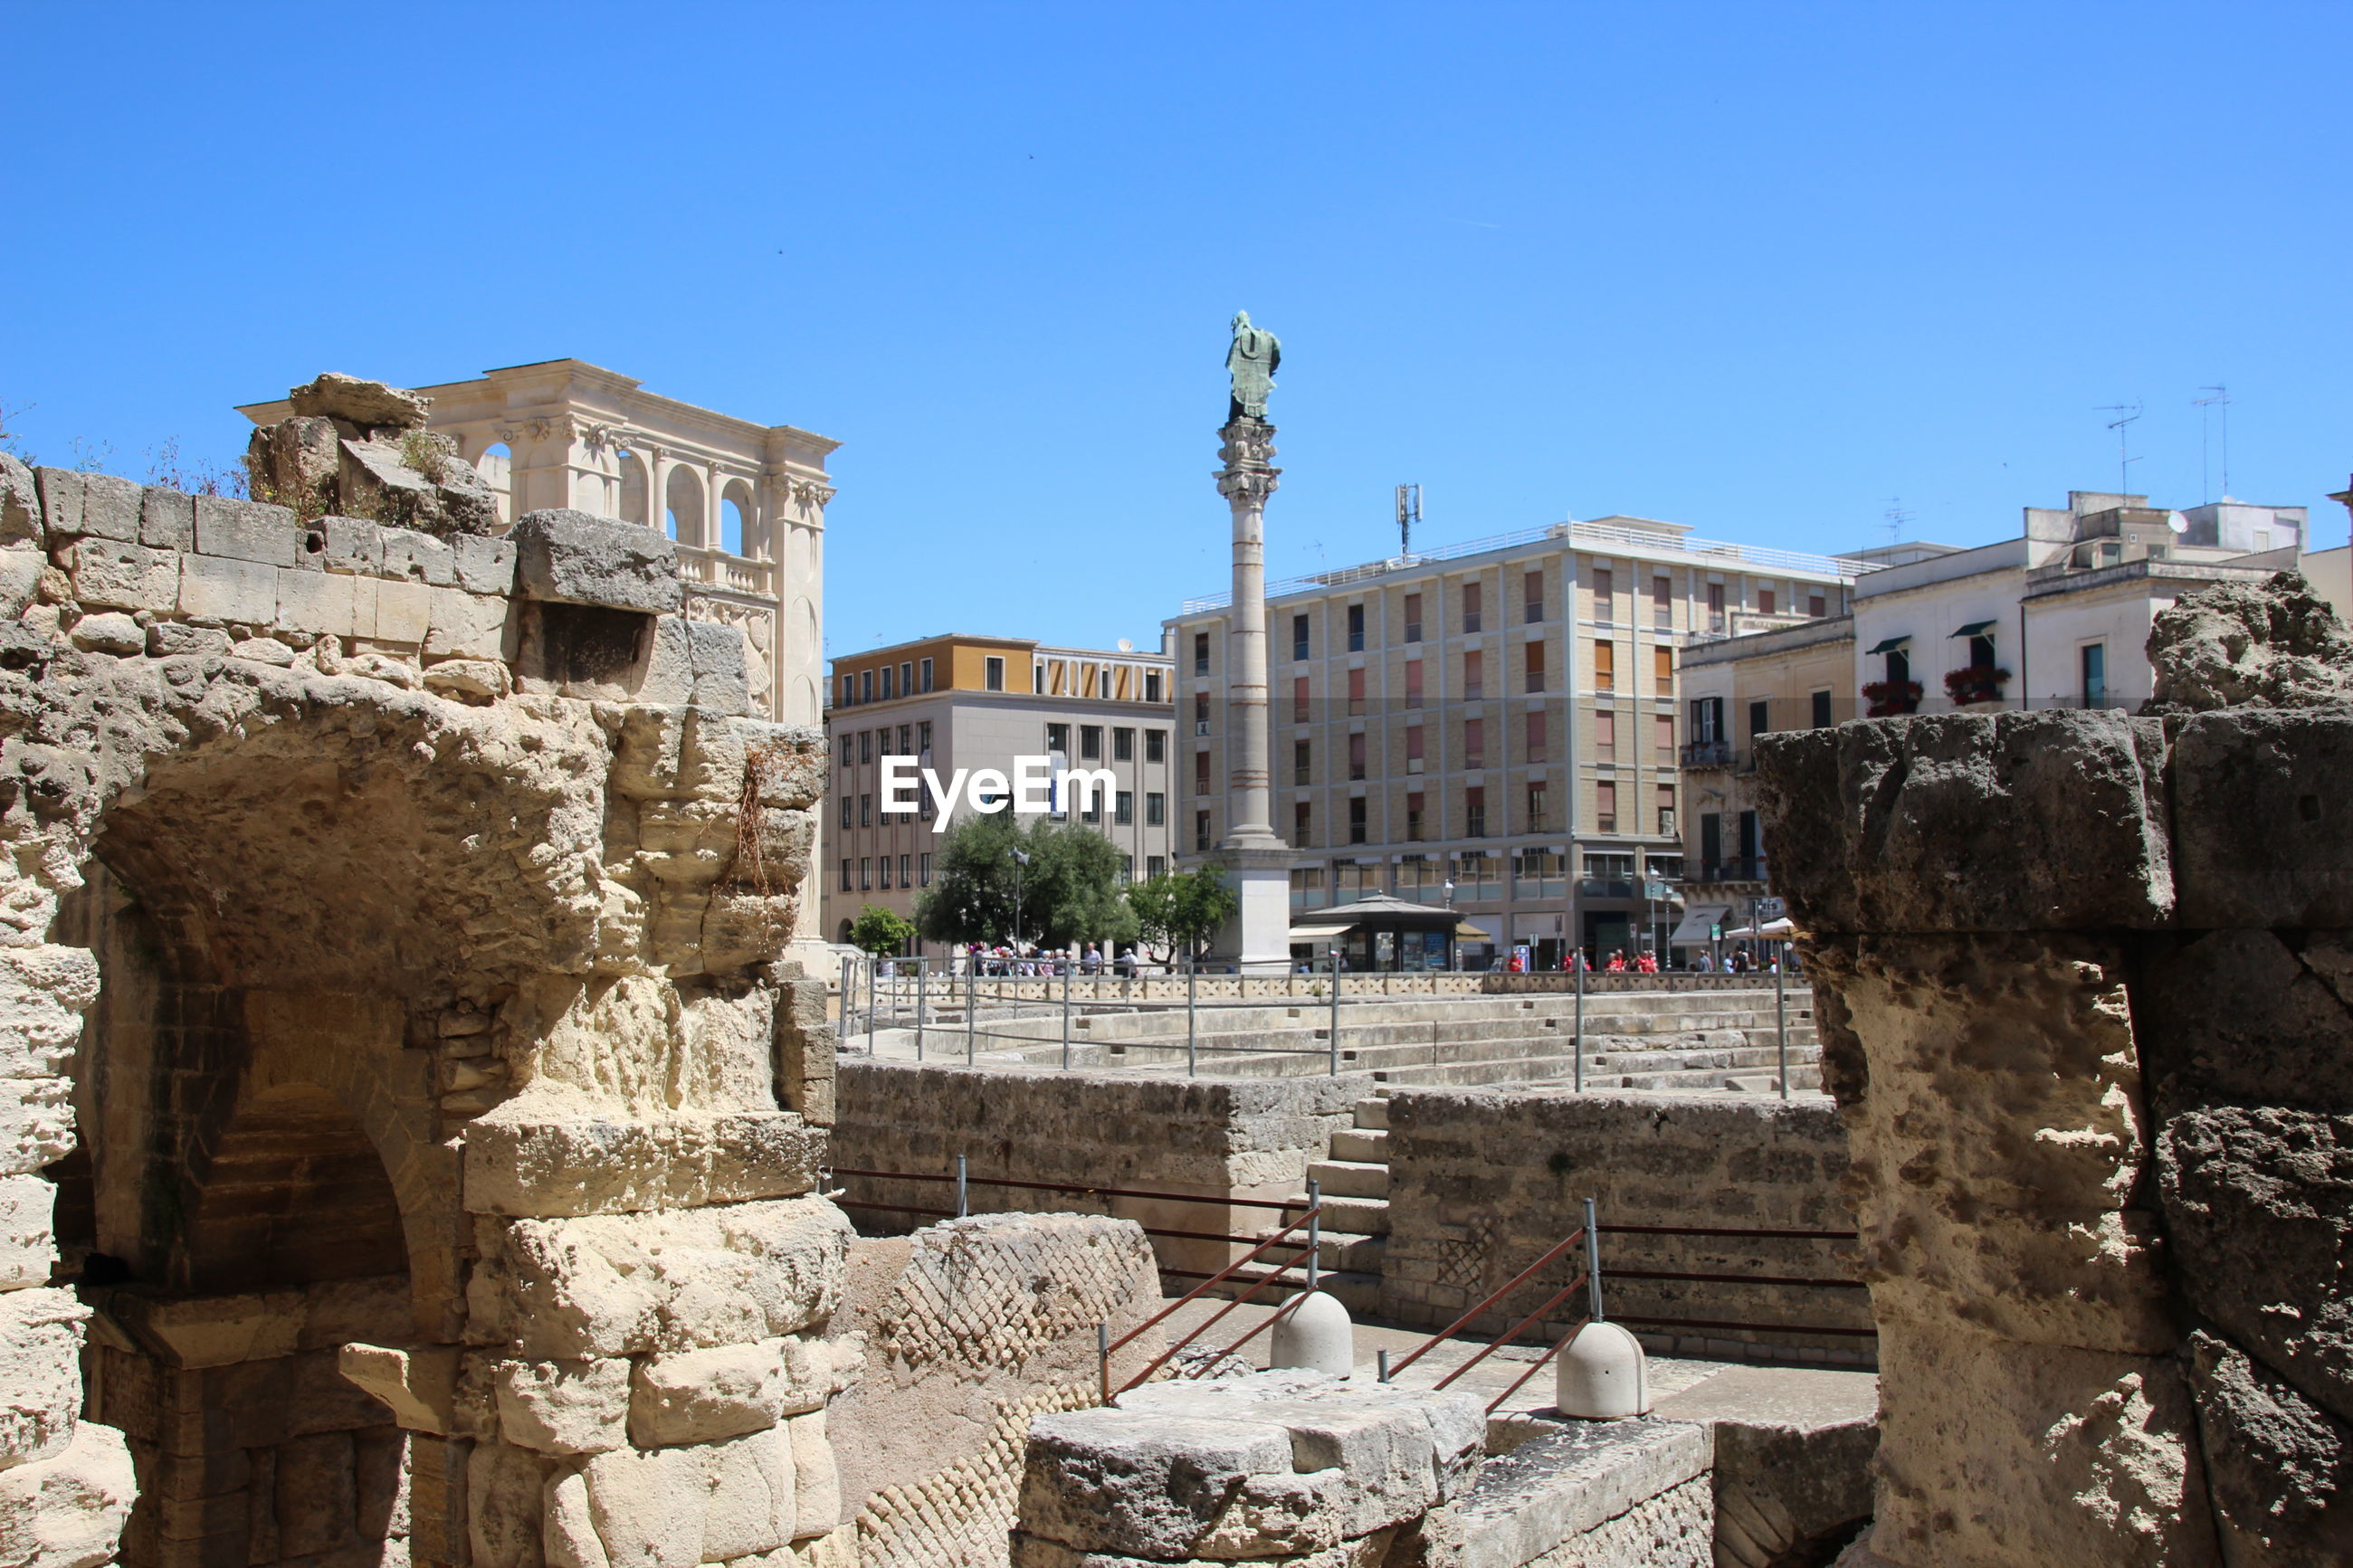 Roman forum against clear blue sky in city on sunny day